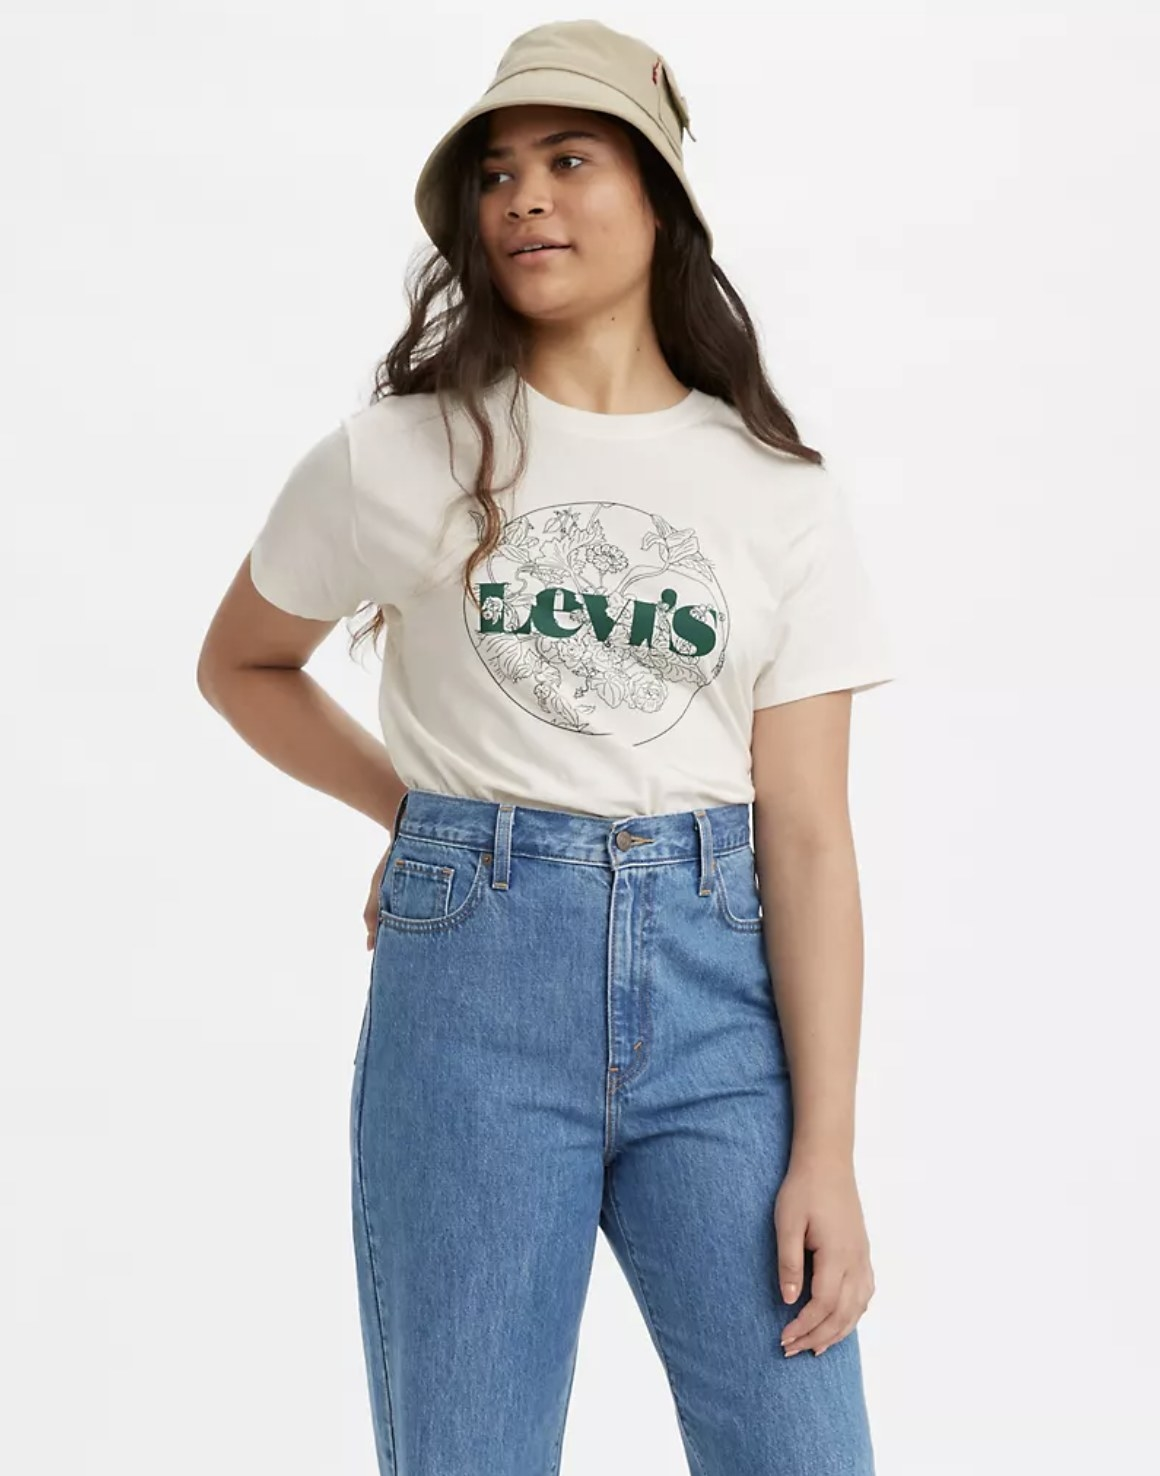 Model is wearing high waisted denim jeans and a white graphic tee